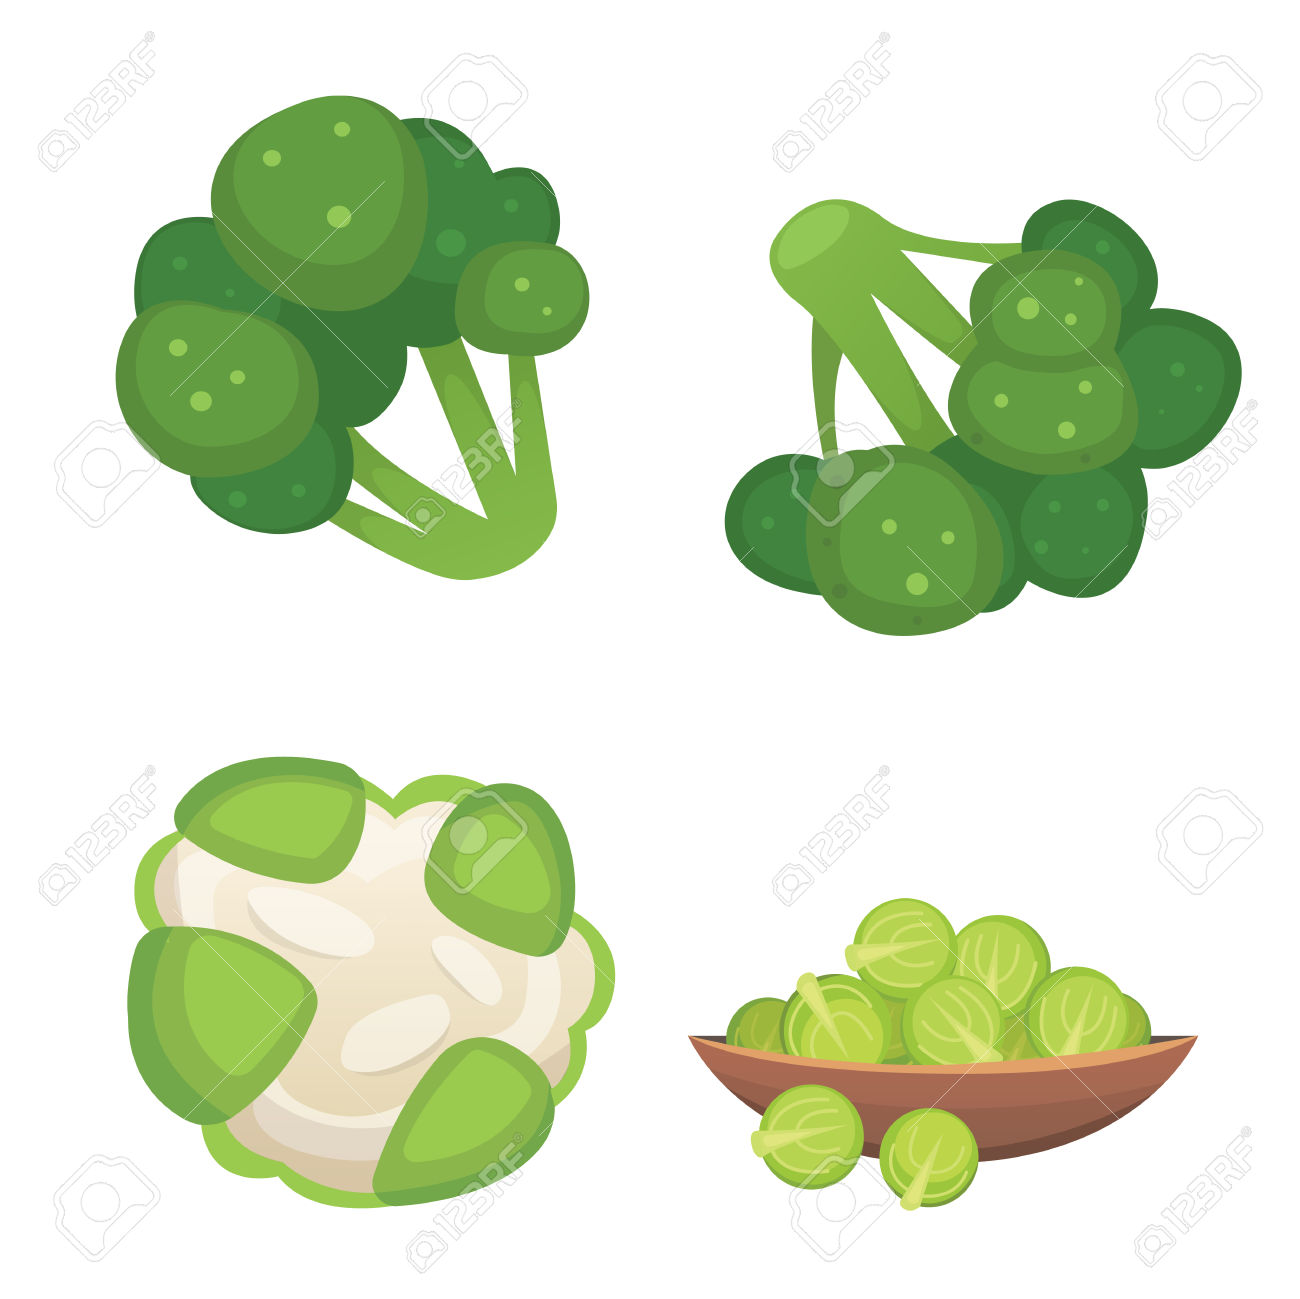 Cabbage clipart head lettuce. Leaf